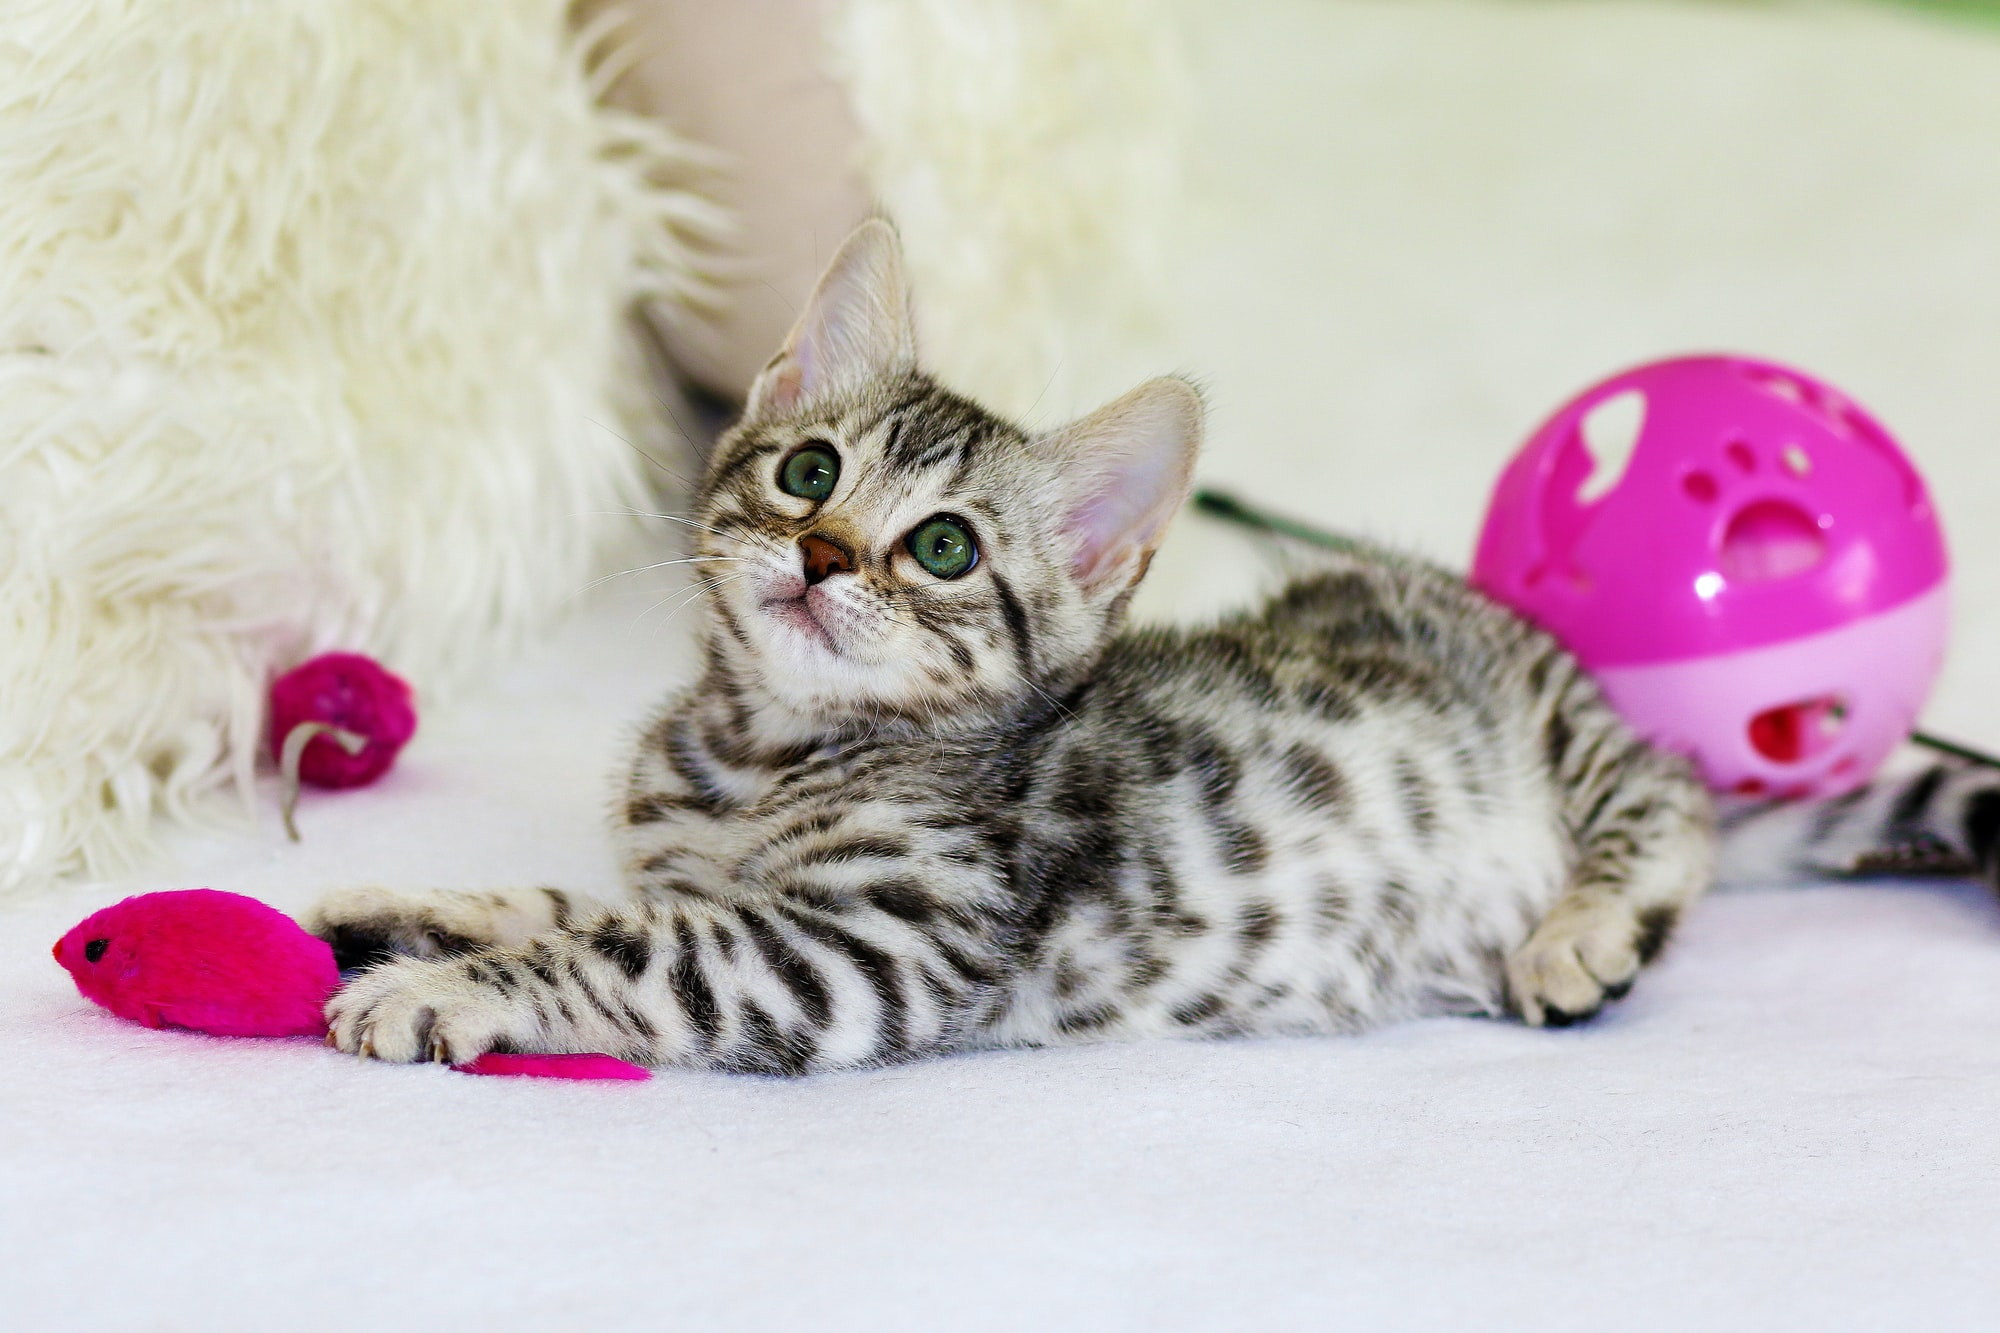 Cat Toys; What Ones Should I Buy?